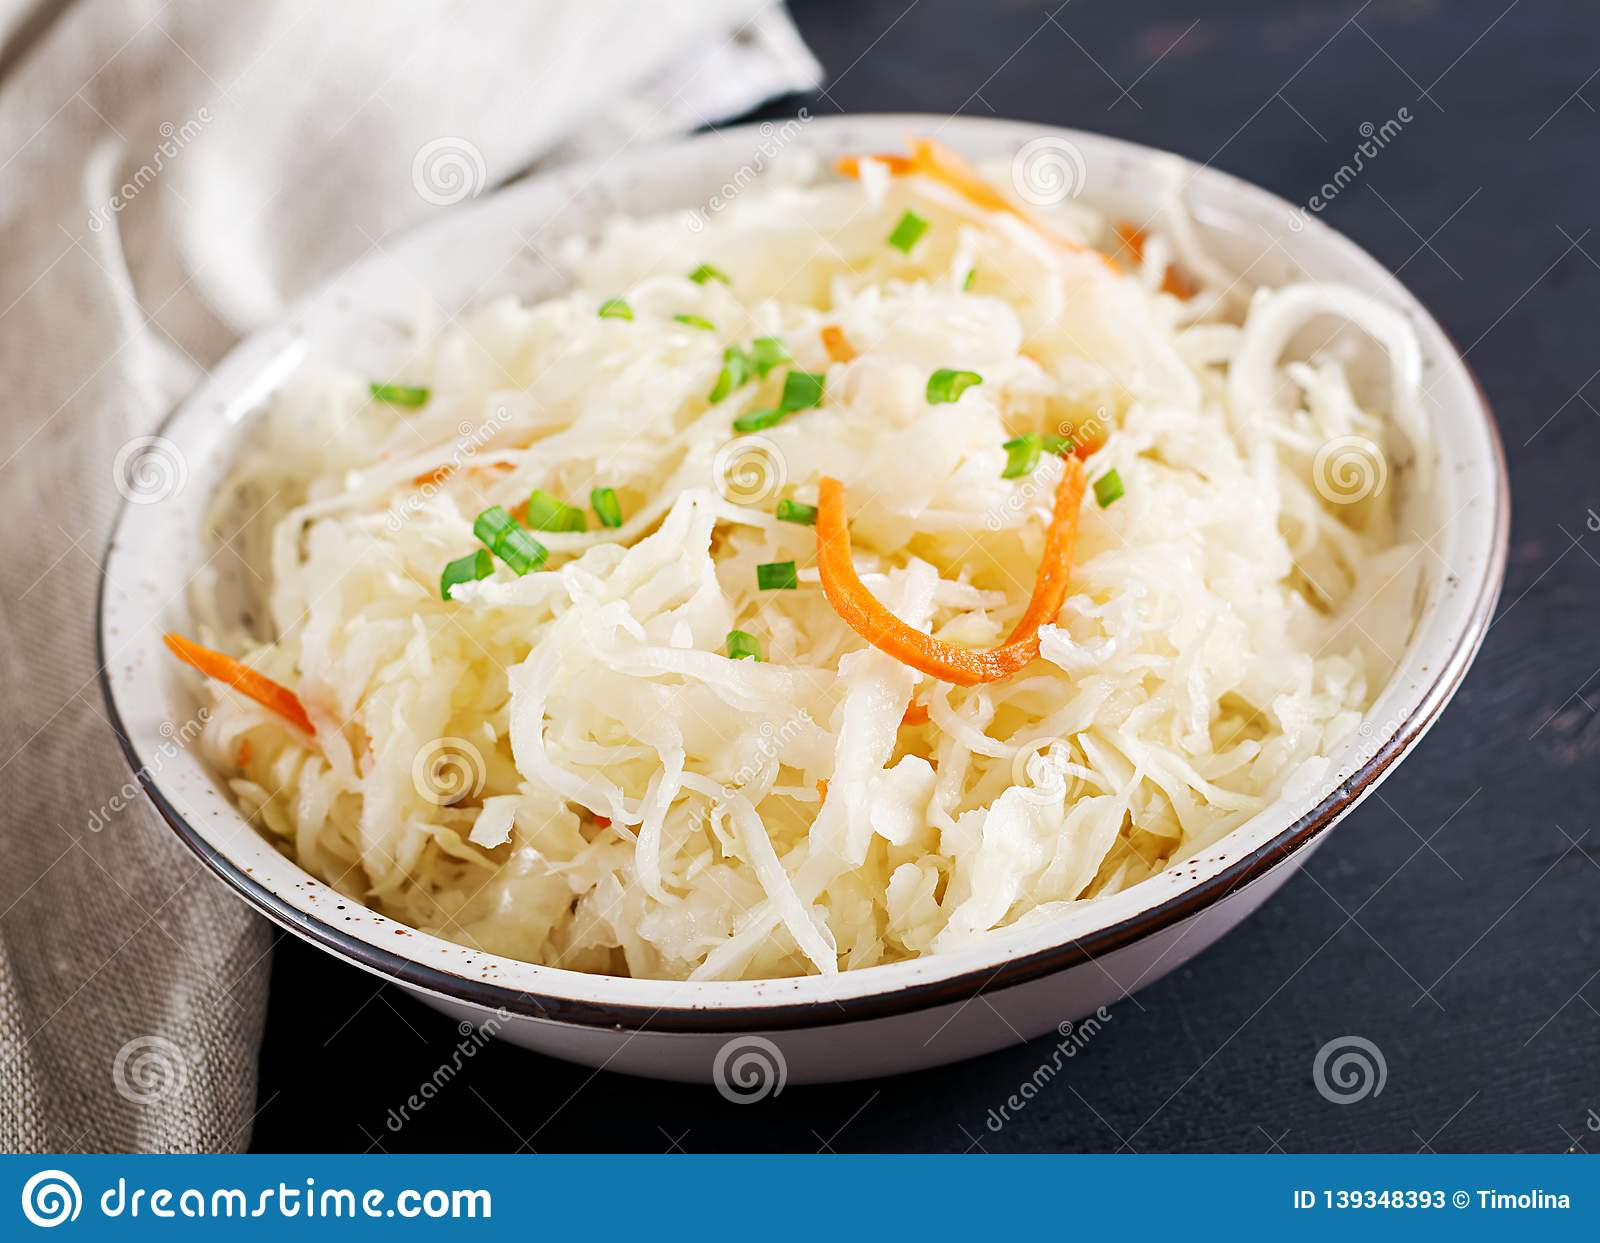 Fermented cabbage. Vegan food. Sauerkraut with carrot and spices